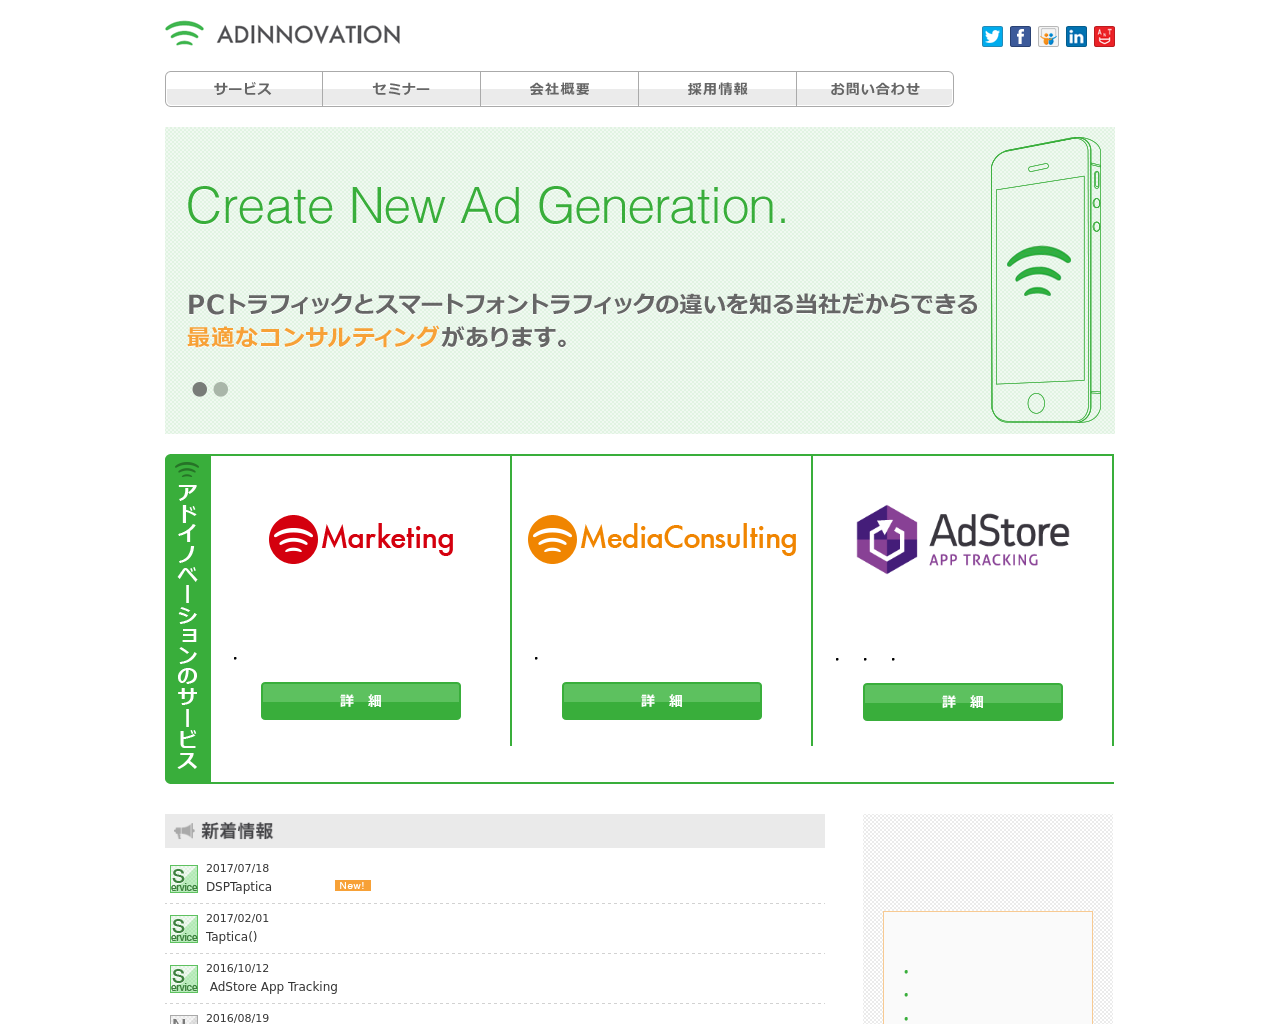 AdInnovation-Advertising-Reviews-Pricing